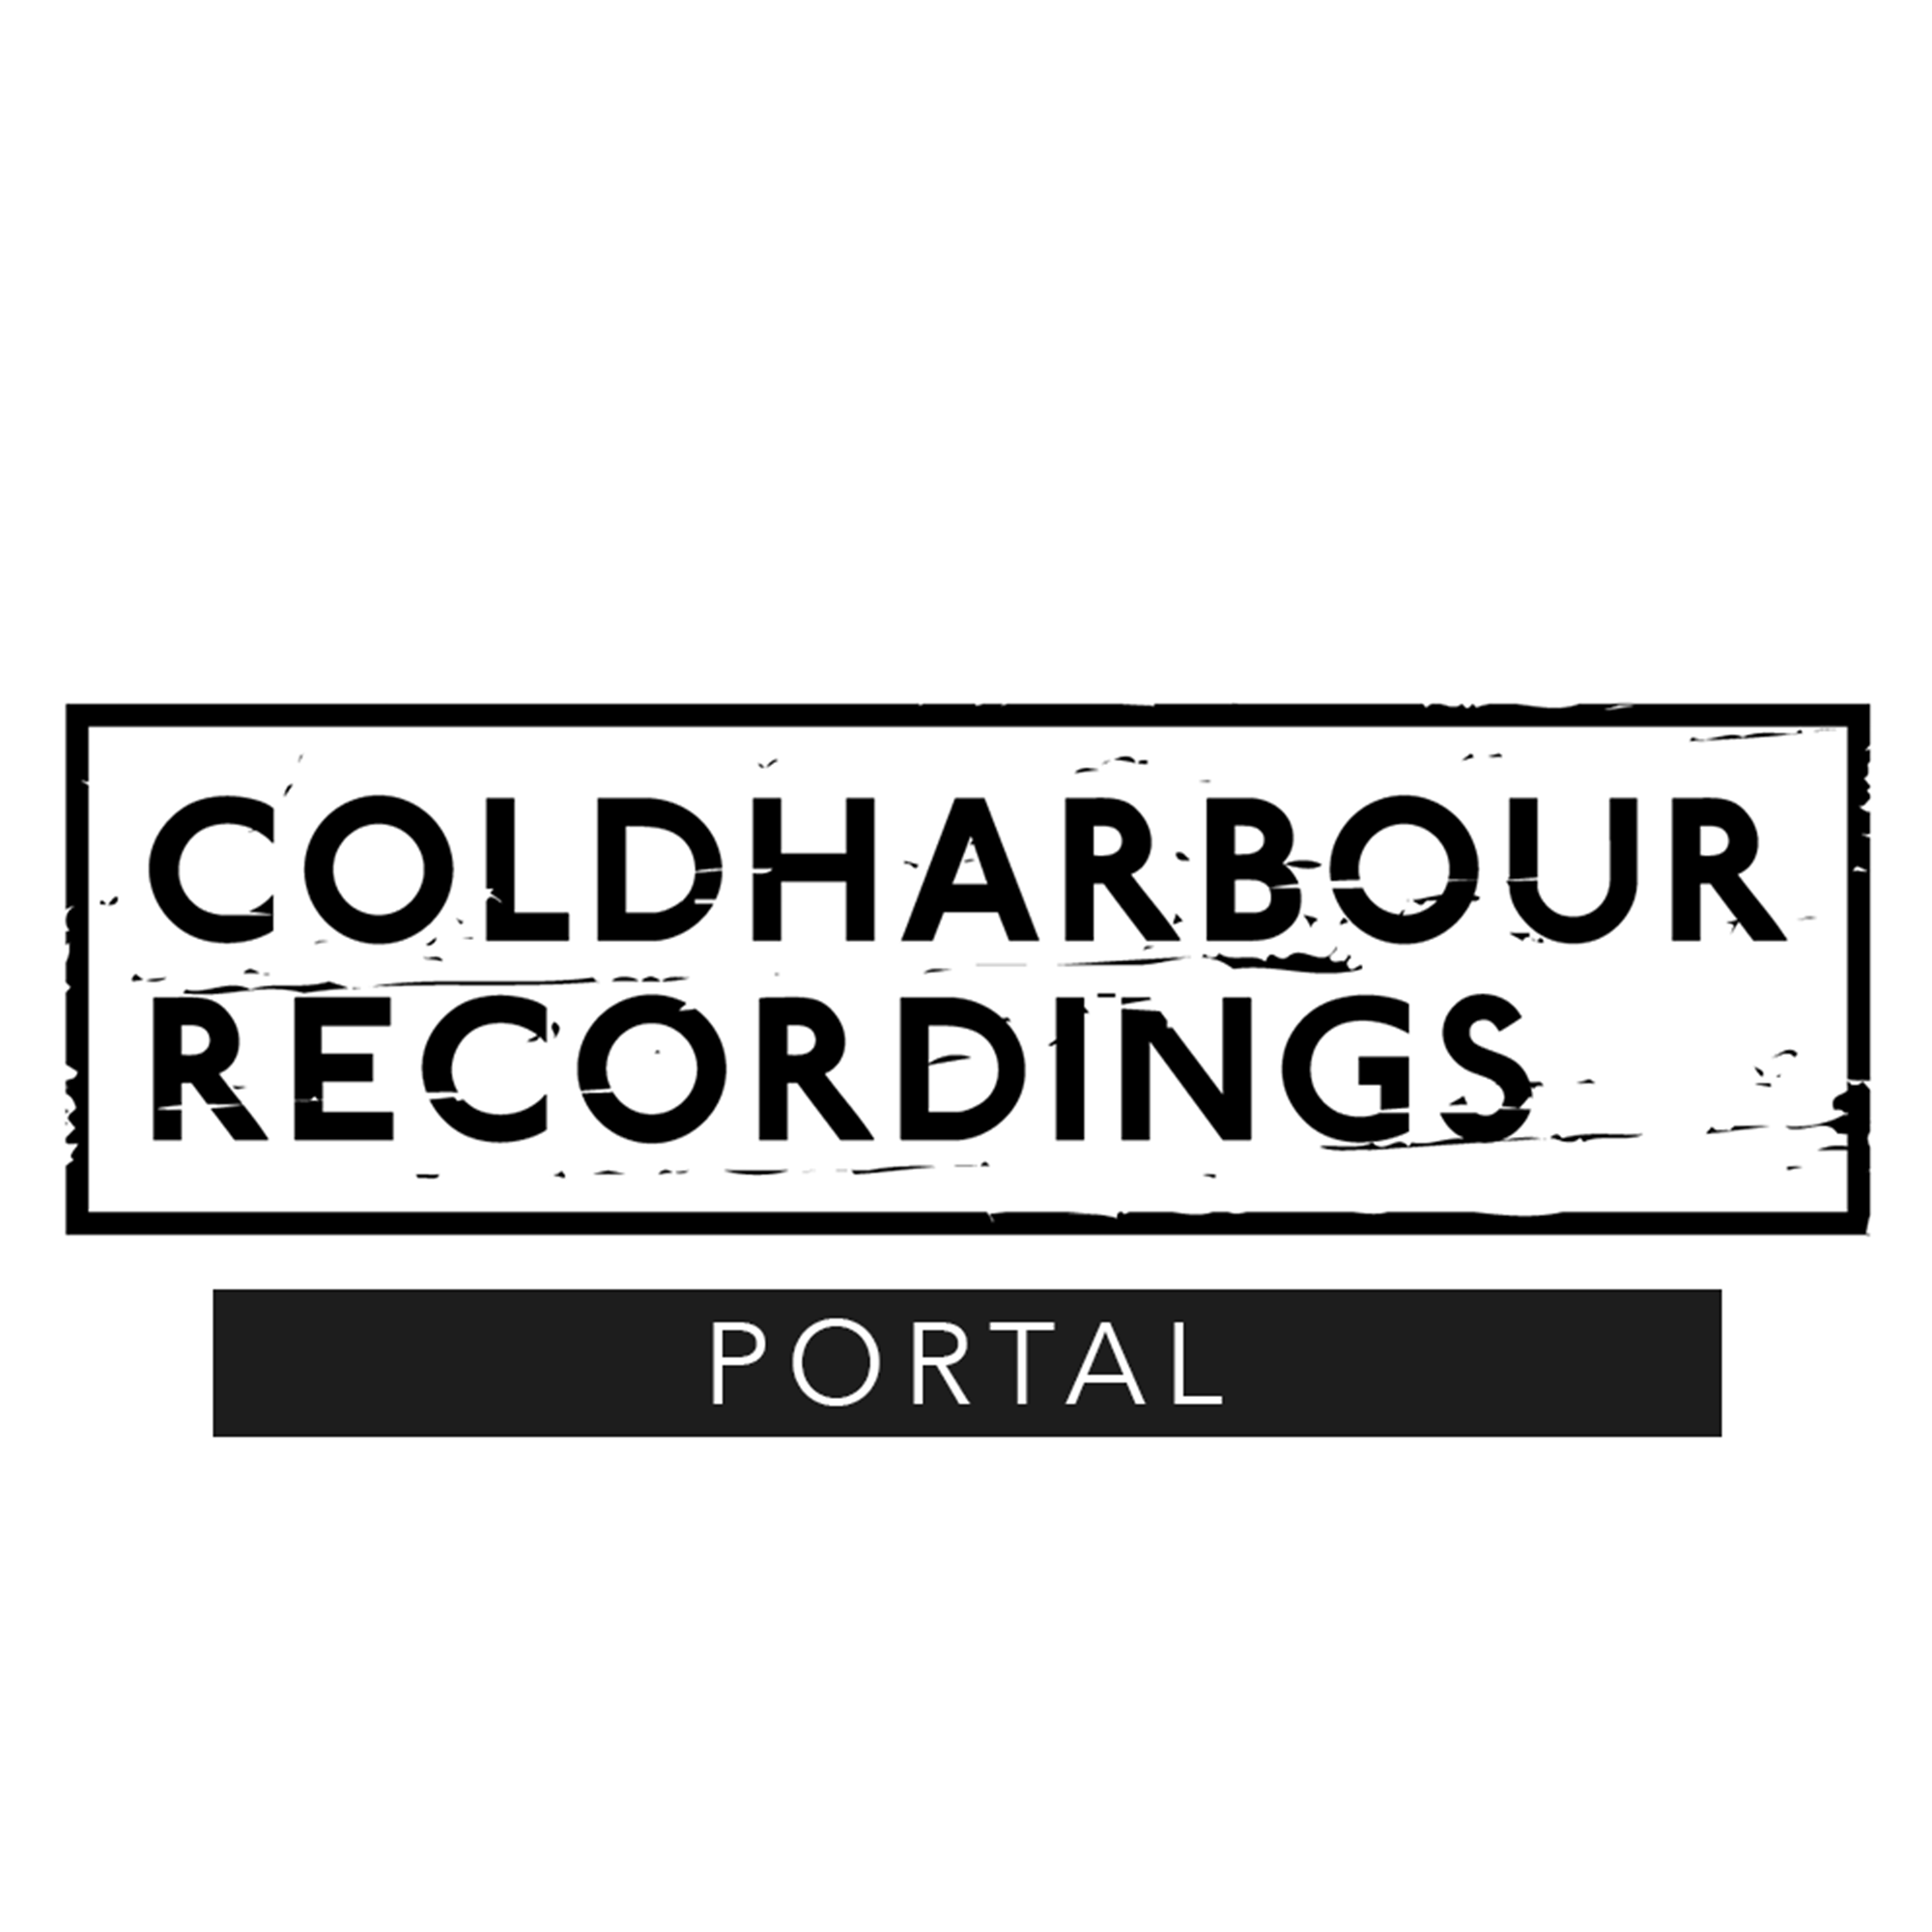 Coldharbour Recordings Portal